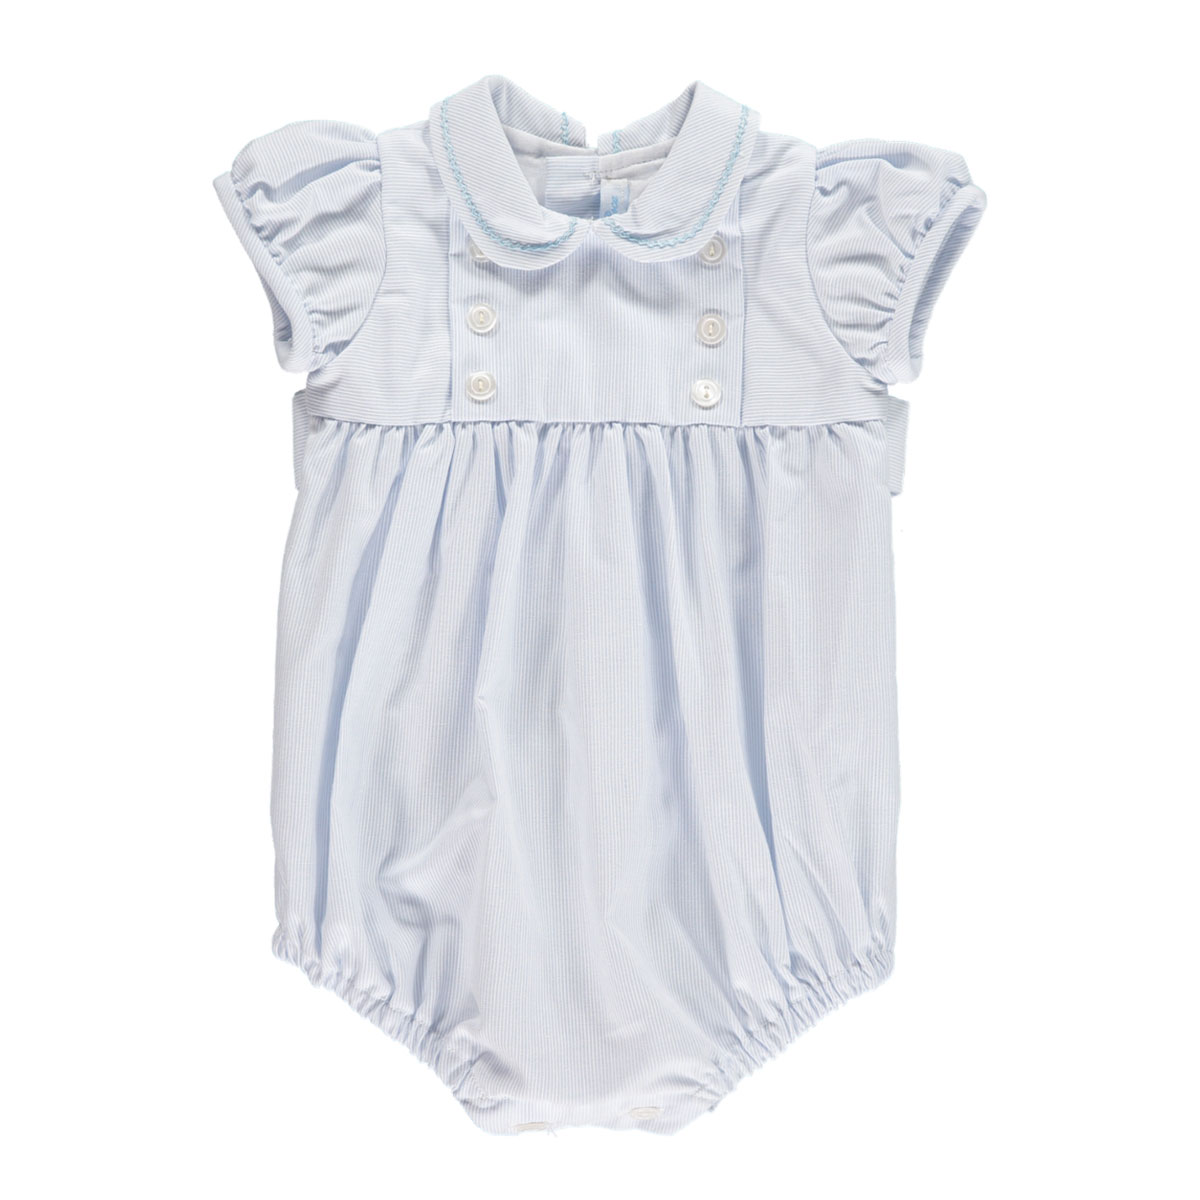 Amaia Baby Doll Romper in Pale Blue